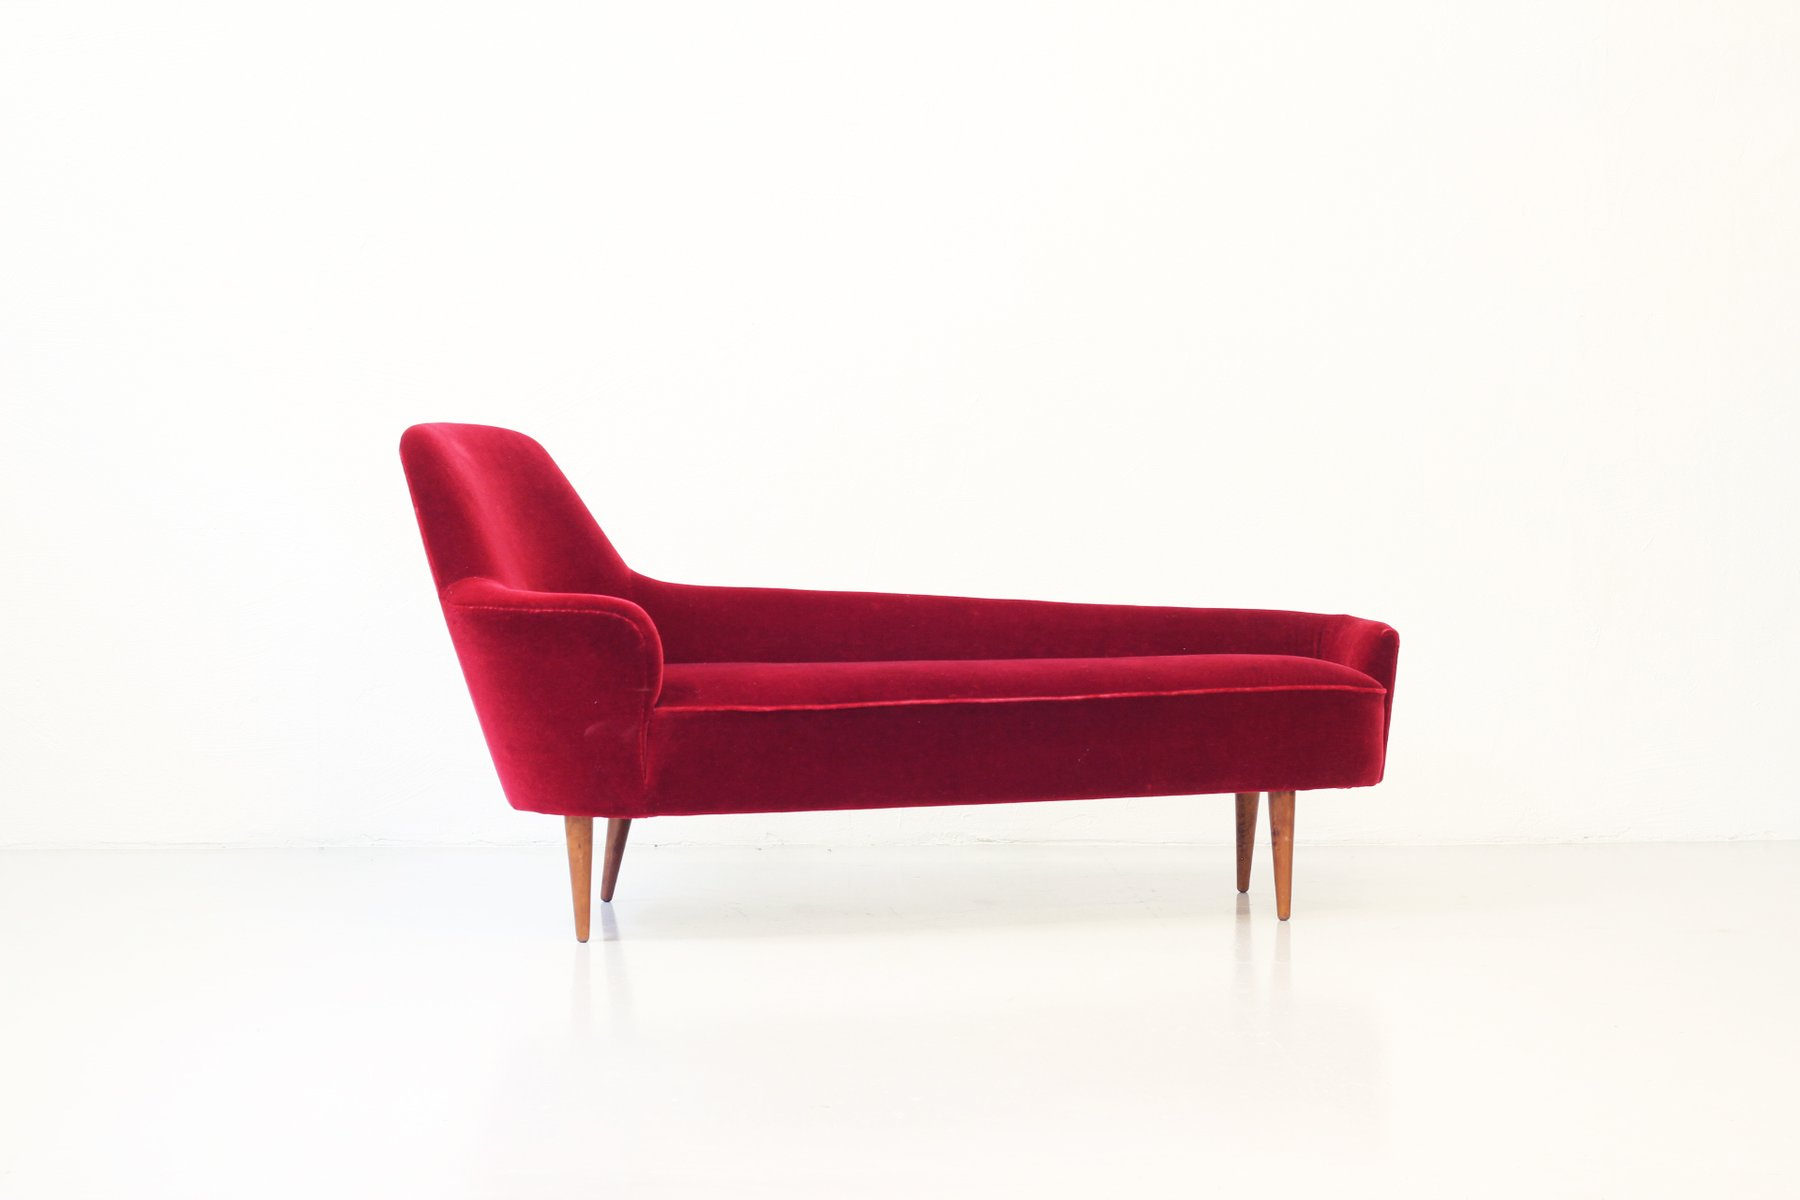 Singoalla chaise lounge by gillis lundgren for ikea 1961 for sale at pamono - Chaise pliantes ikea ...